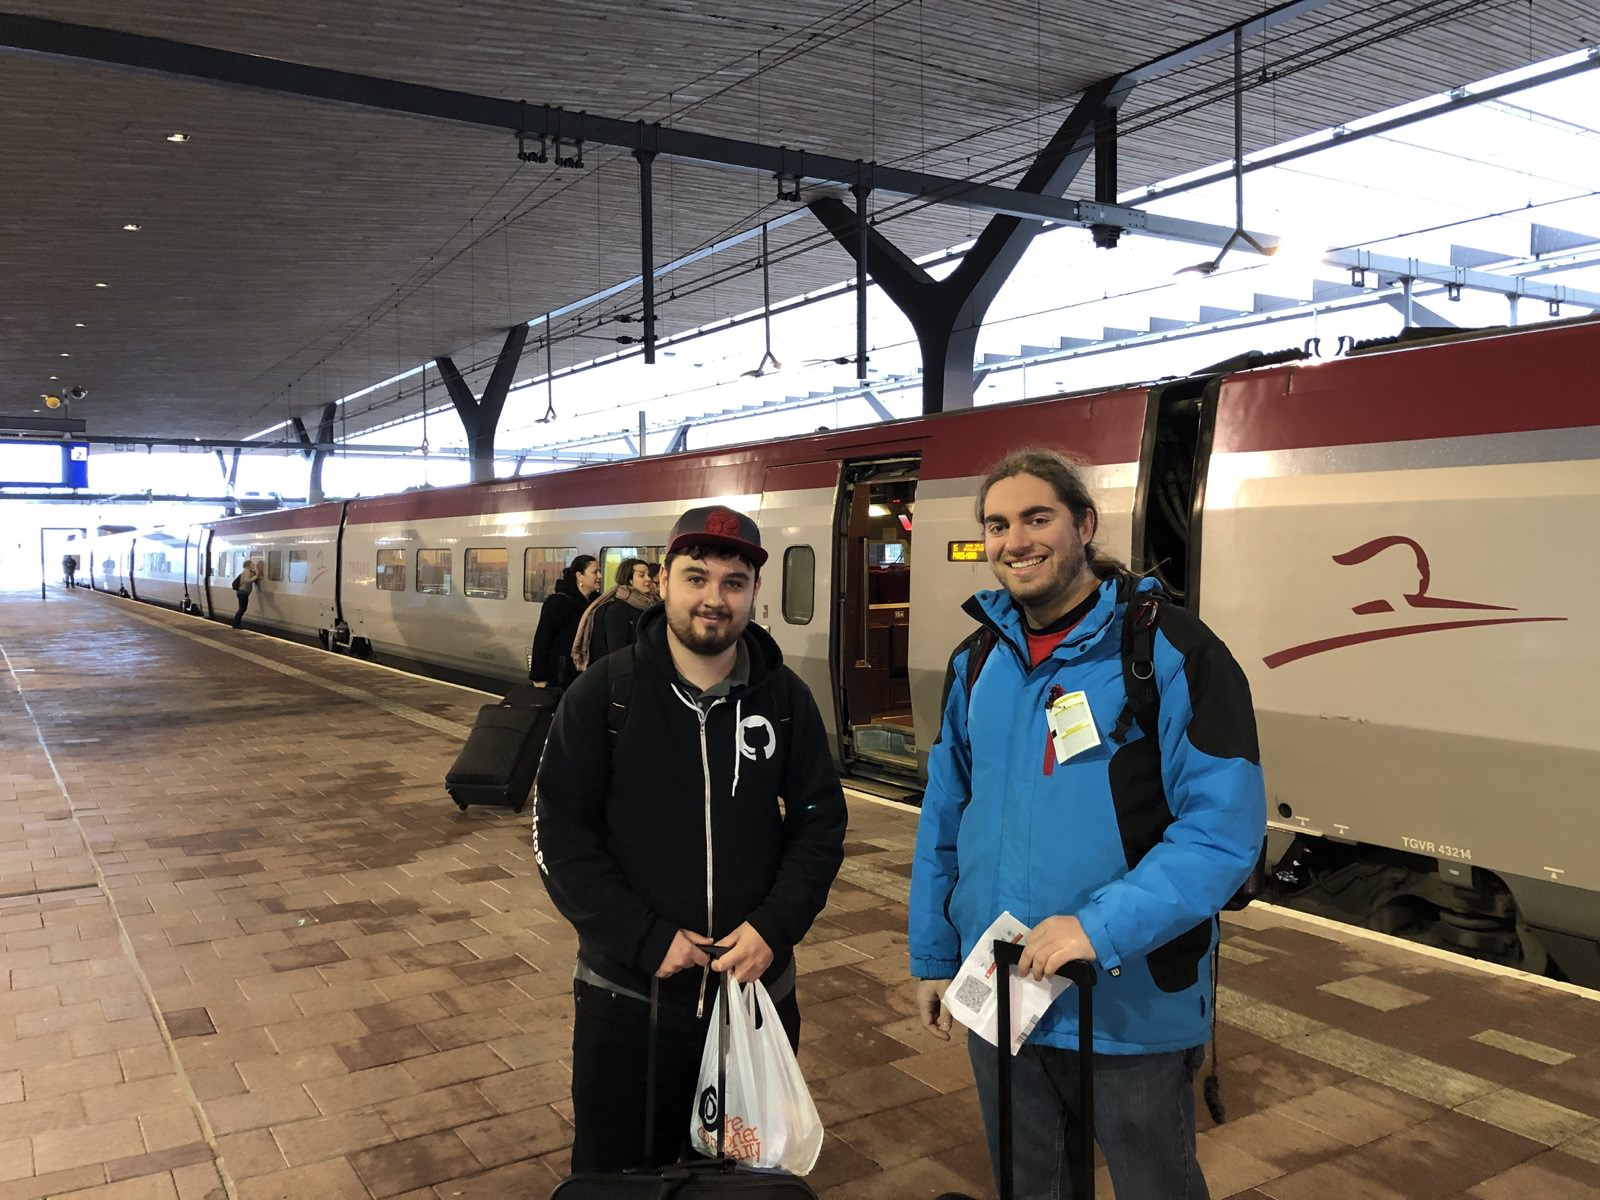 Forest and I about to board the Thalys high speed train